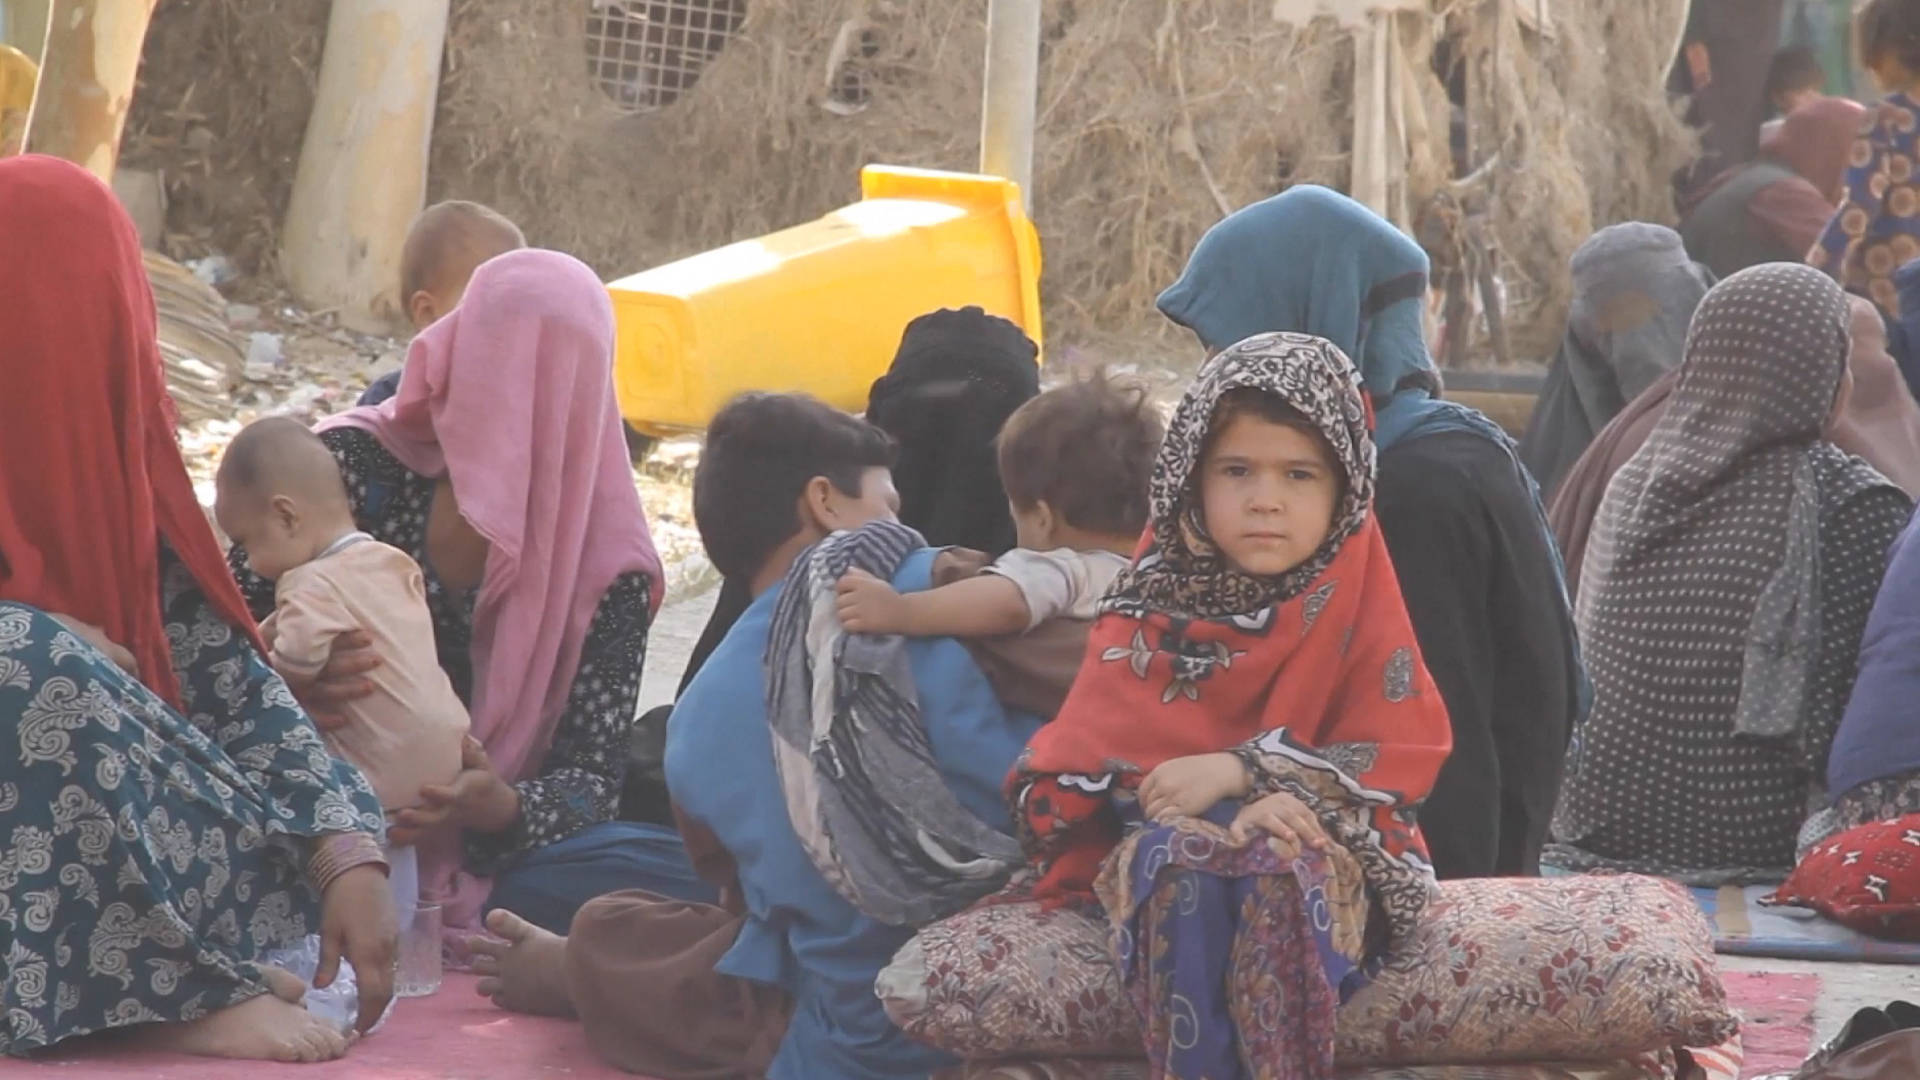 """Read more about the article U.N. Warns of """"Humanitarian Catastrophe"""" in Afghanistan Amid Political Turmoil, Economic Crisis & Drought"""